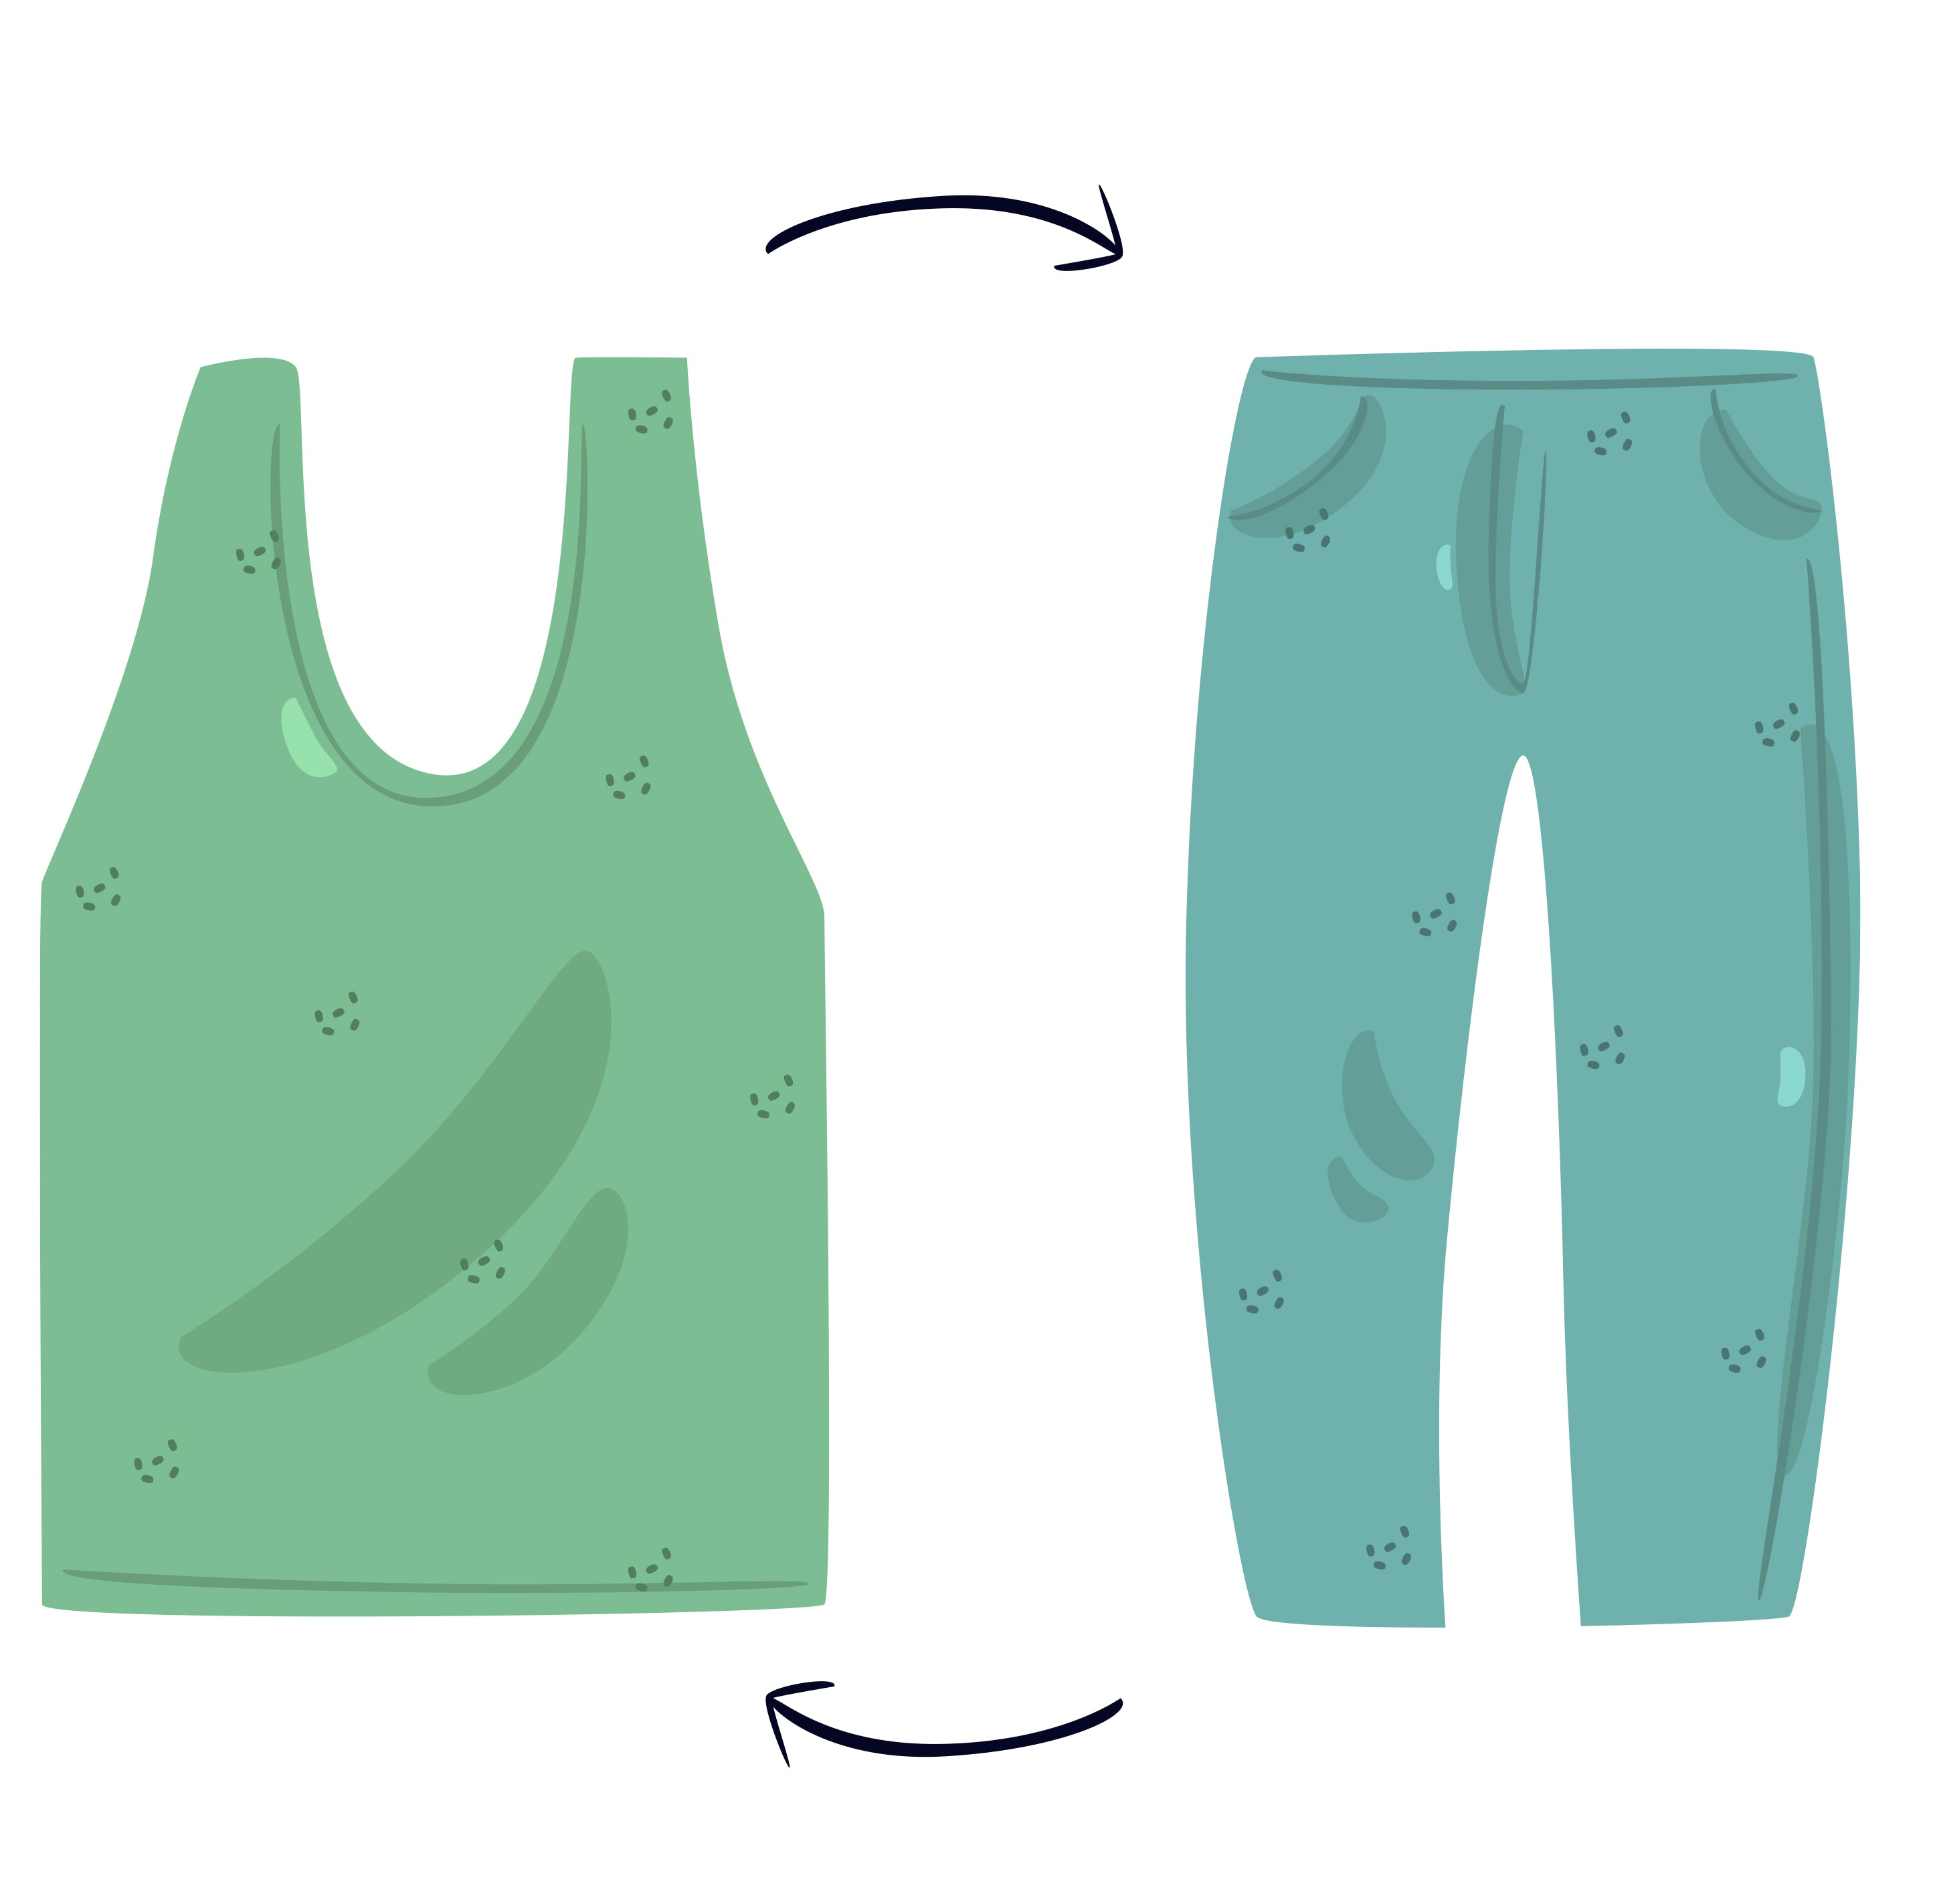 Recycle unwanted clothing - How To Live Sustainable - Eco Living and Sustainability Checklist